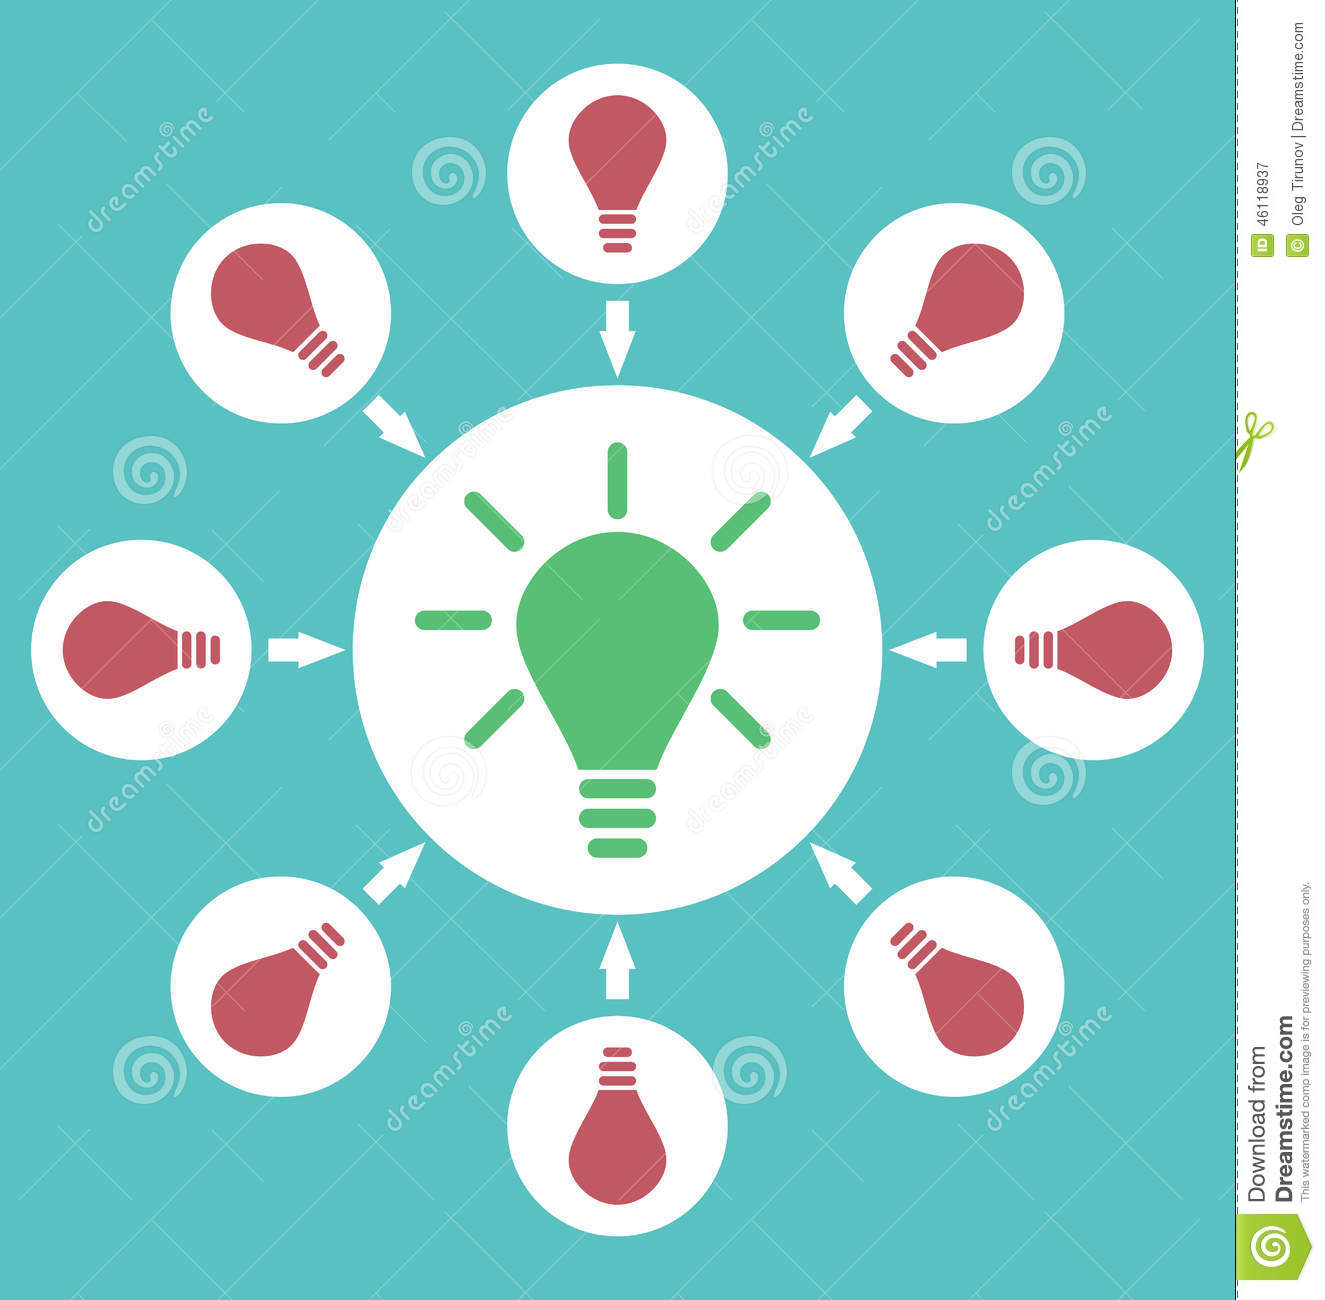 Icon Process Of Generating Ideas To Solve Problems, Birth